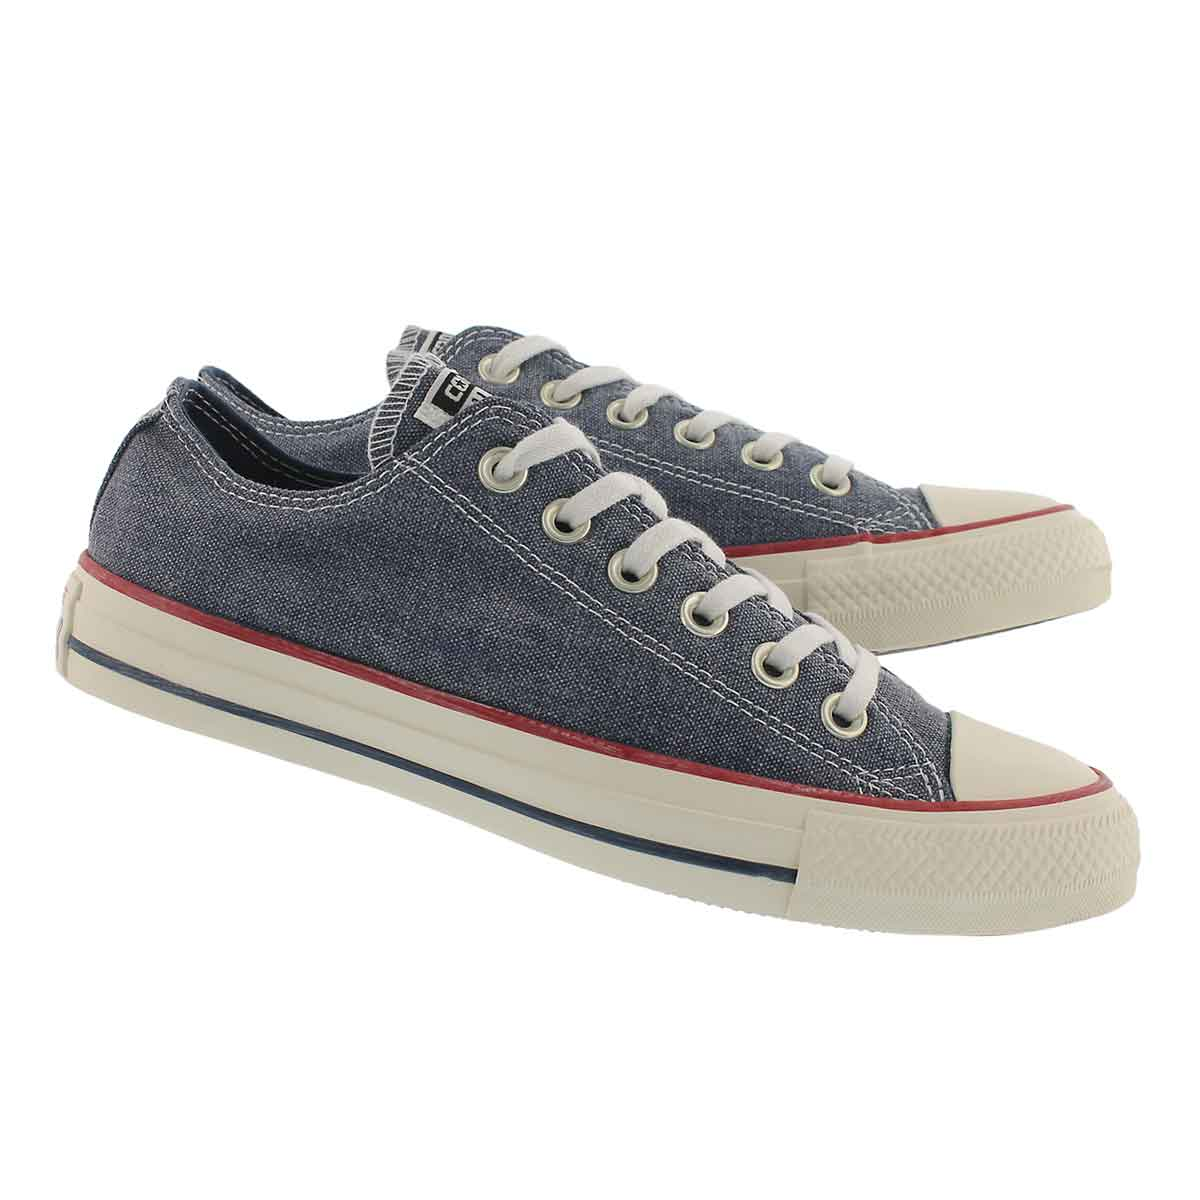 Lds CTAS Stone Wash navy oxford sneaker